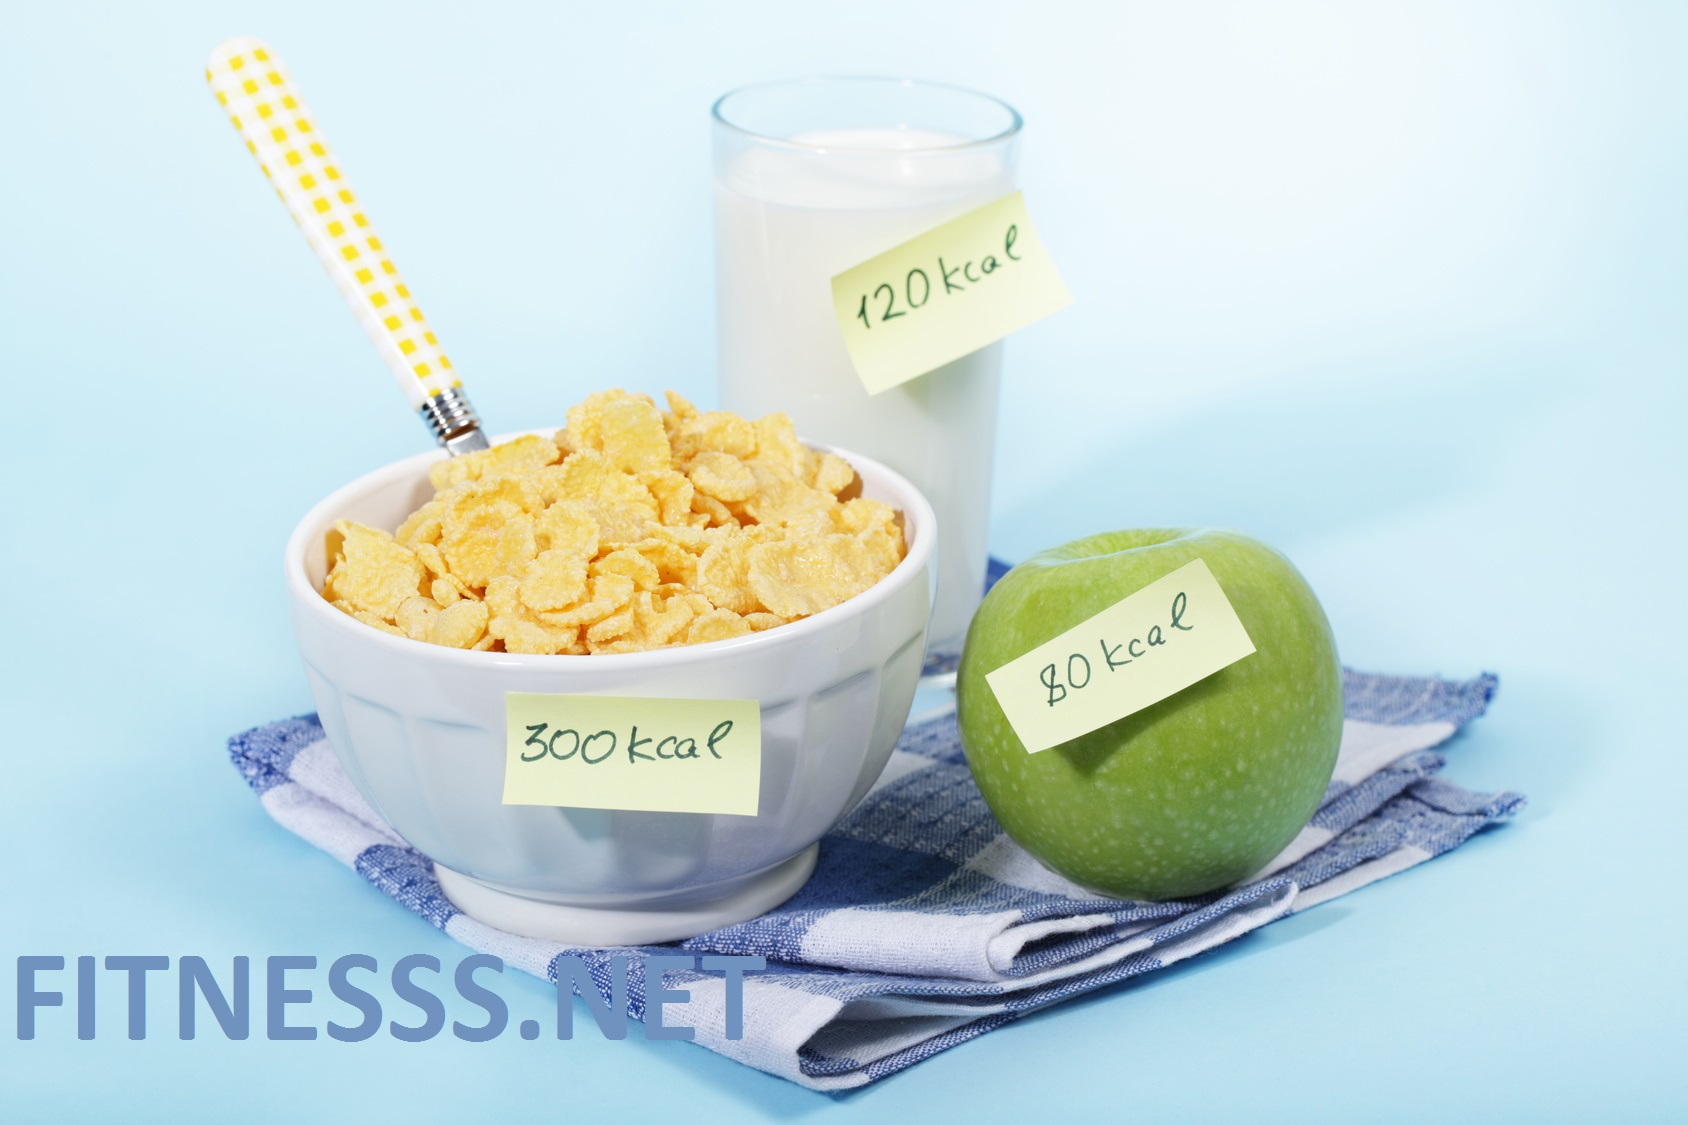 What is medi weight loss diet plan